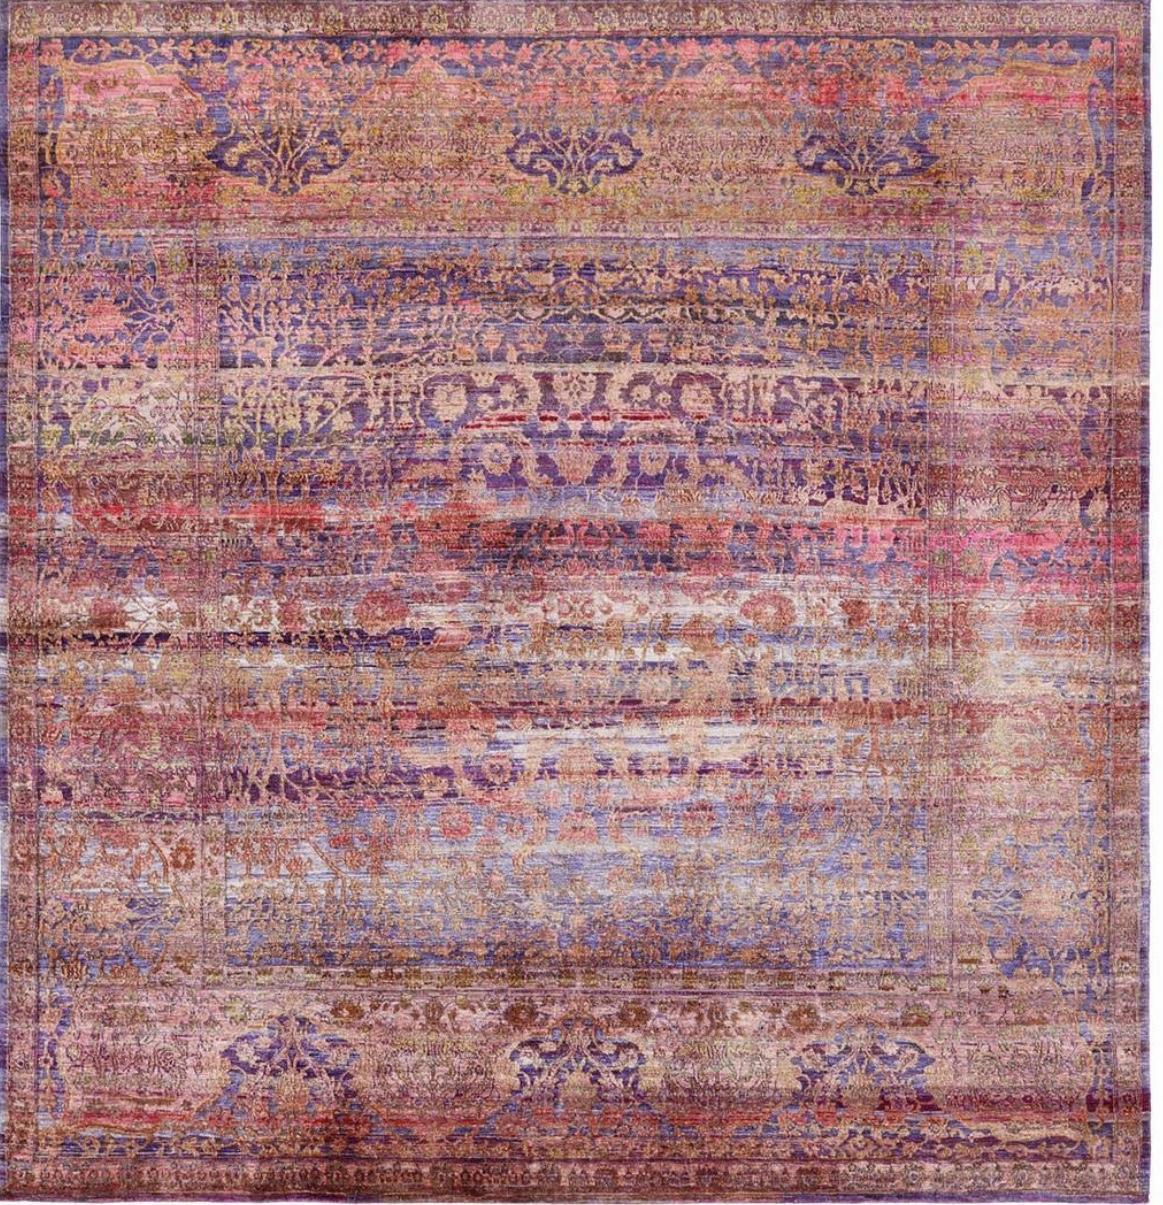 Unique  handtuffed handLoom Solo Solid Shag Collection Modern Plush Cloud Area Rug  150*90 CMs